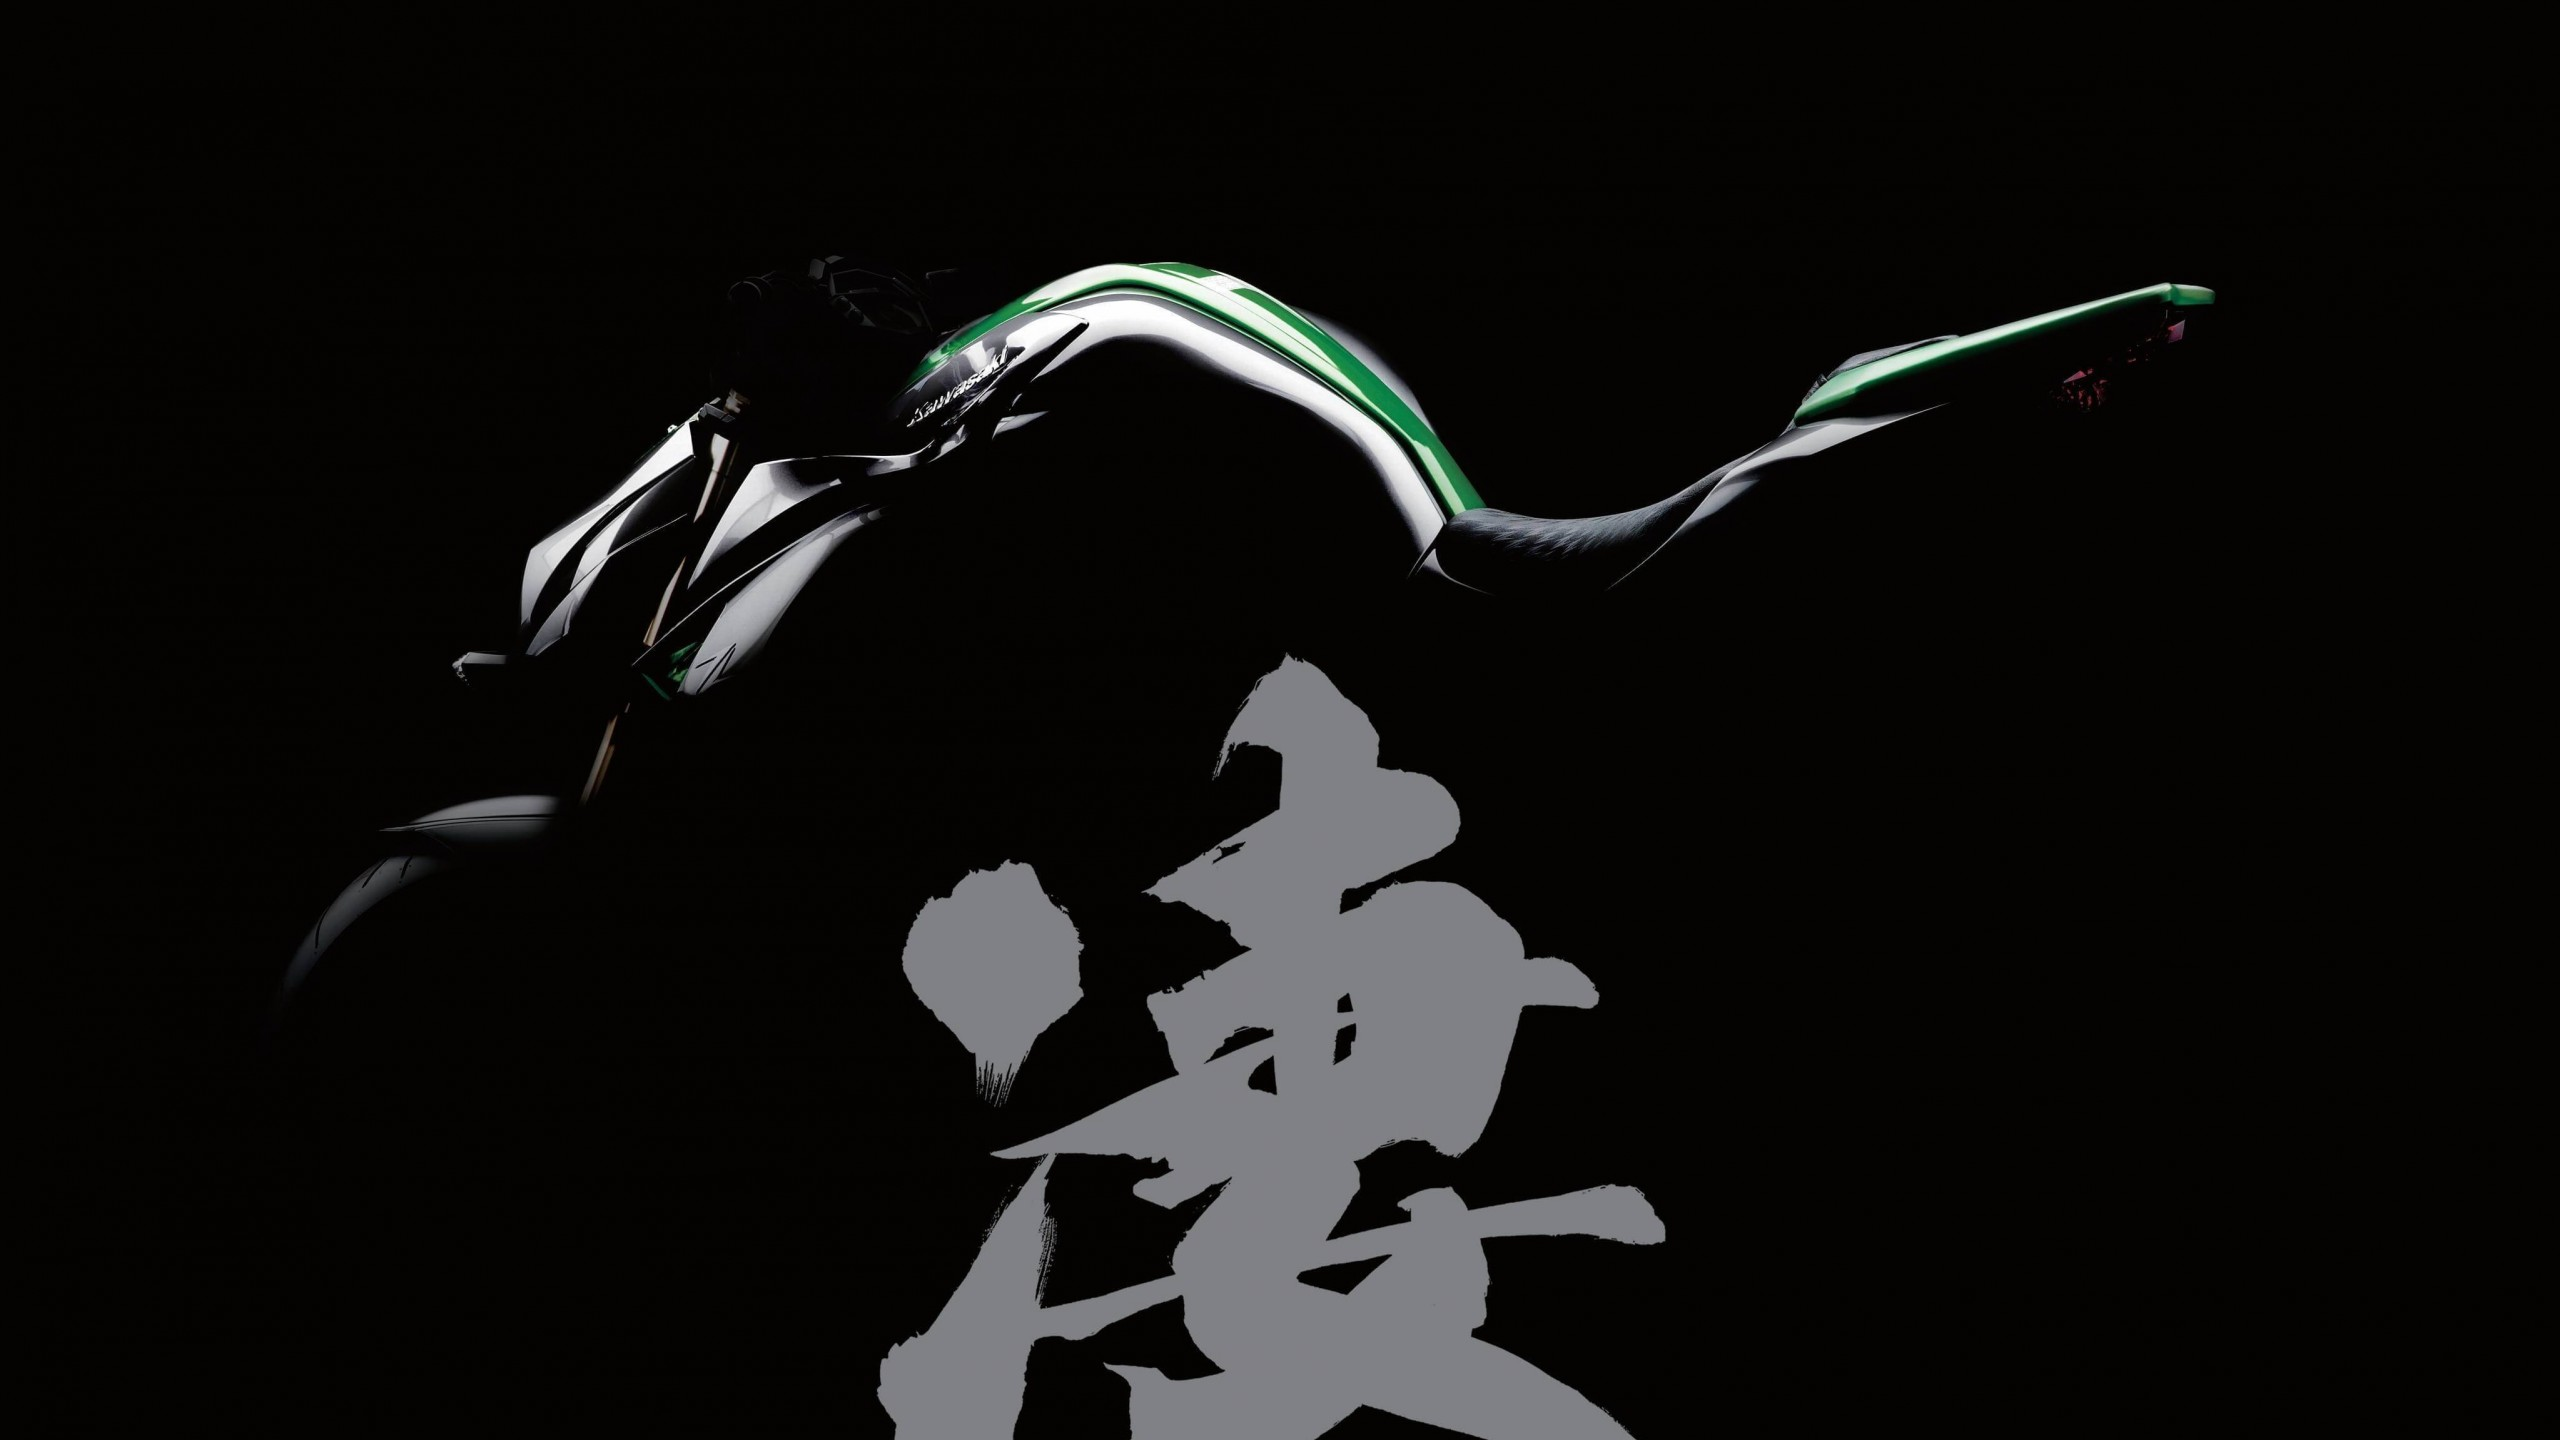 Kawasaki Z1000 Special Edition Sugomi Wallpaper for Social Media YouTube Channel Art